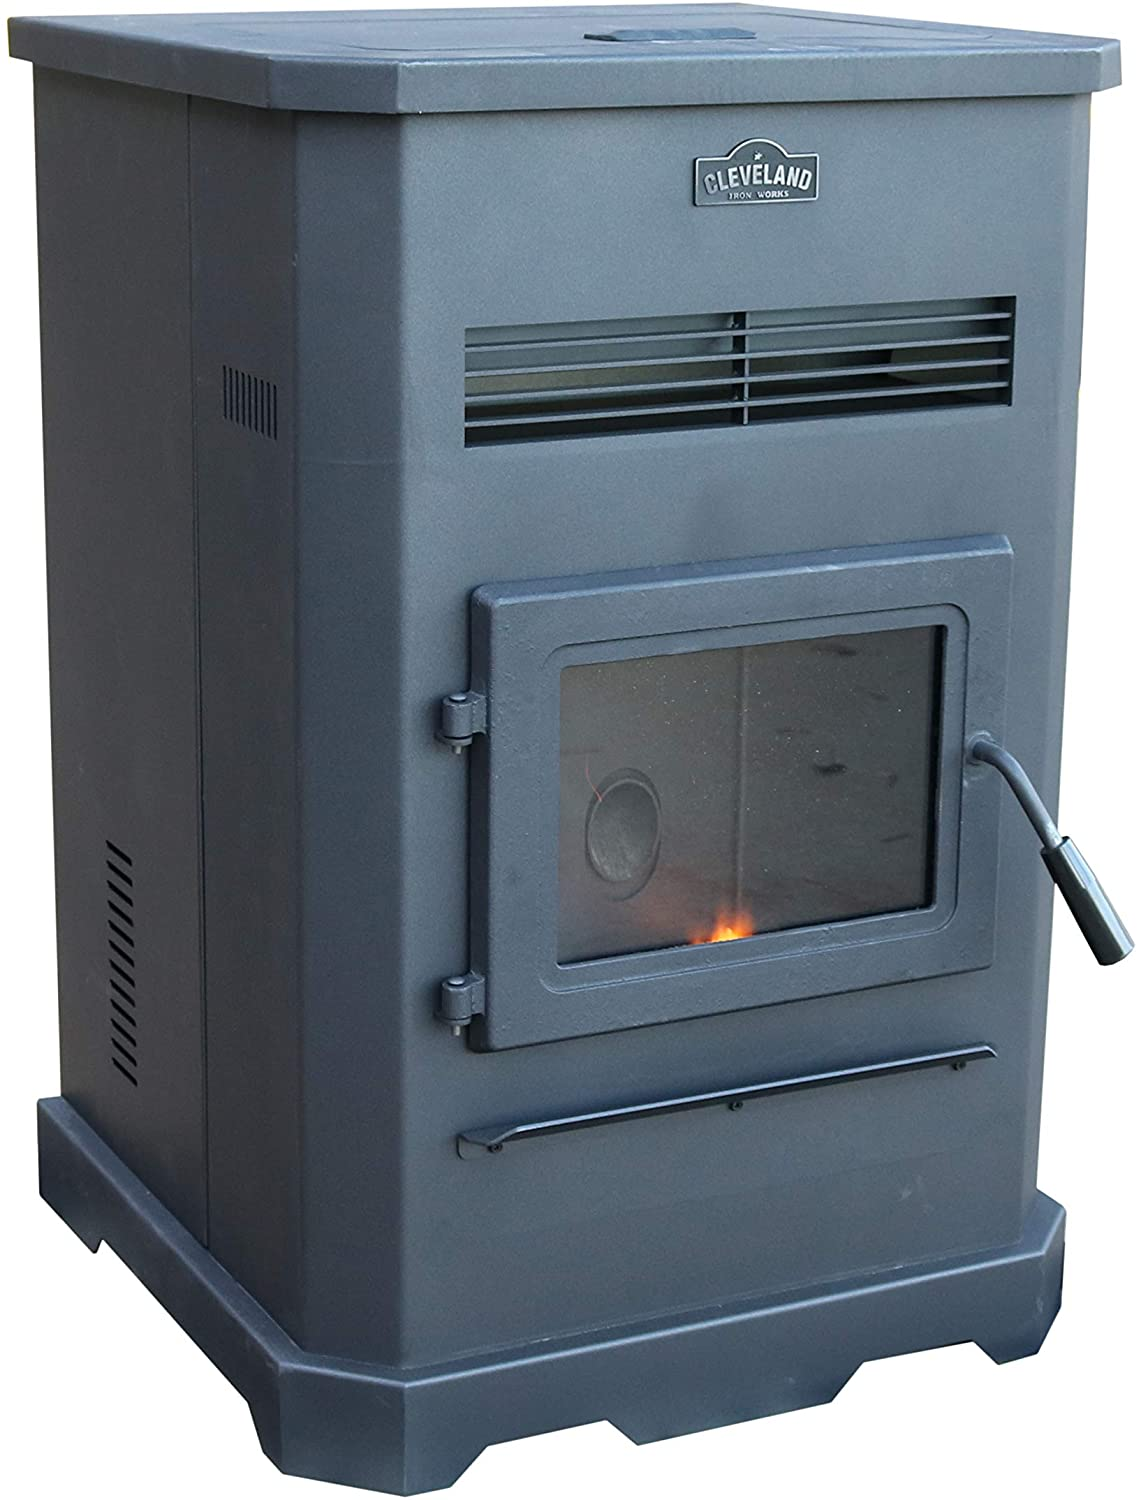 Cleveland Iron Works PS130W-CIW Pellet Stove